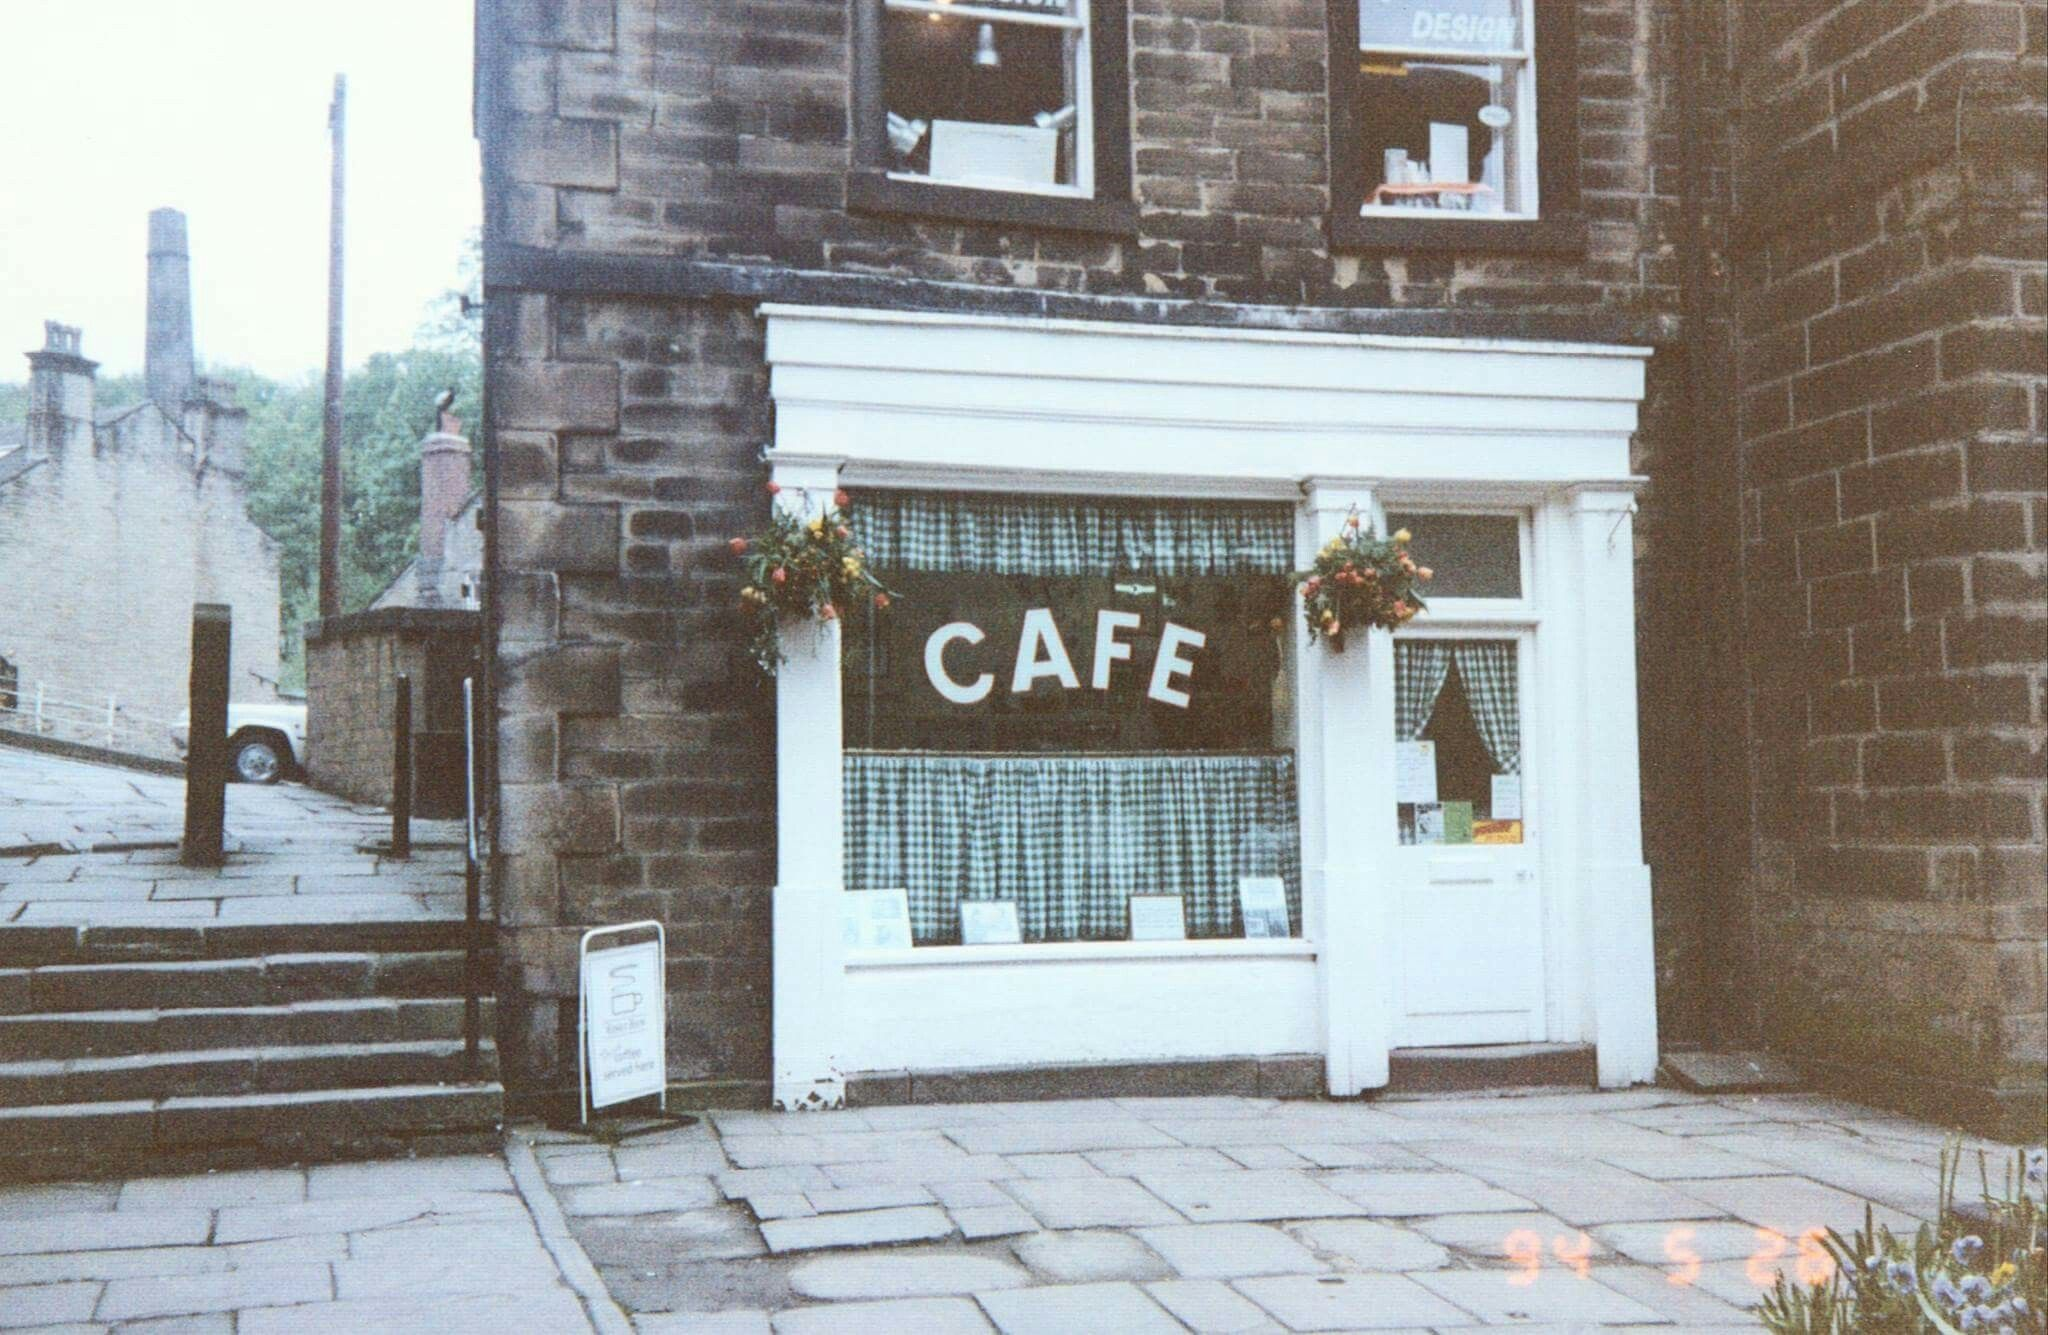 20th august 2017 - as seen on tv. the cafe in last of the summer